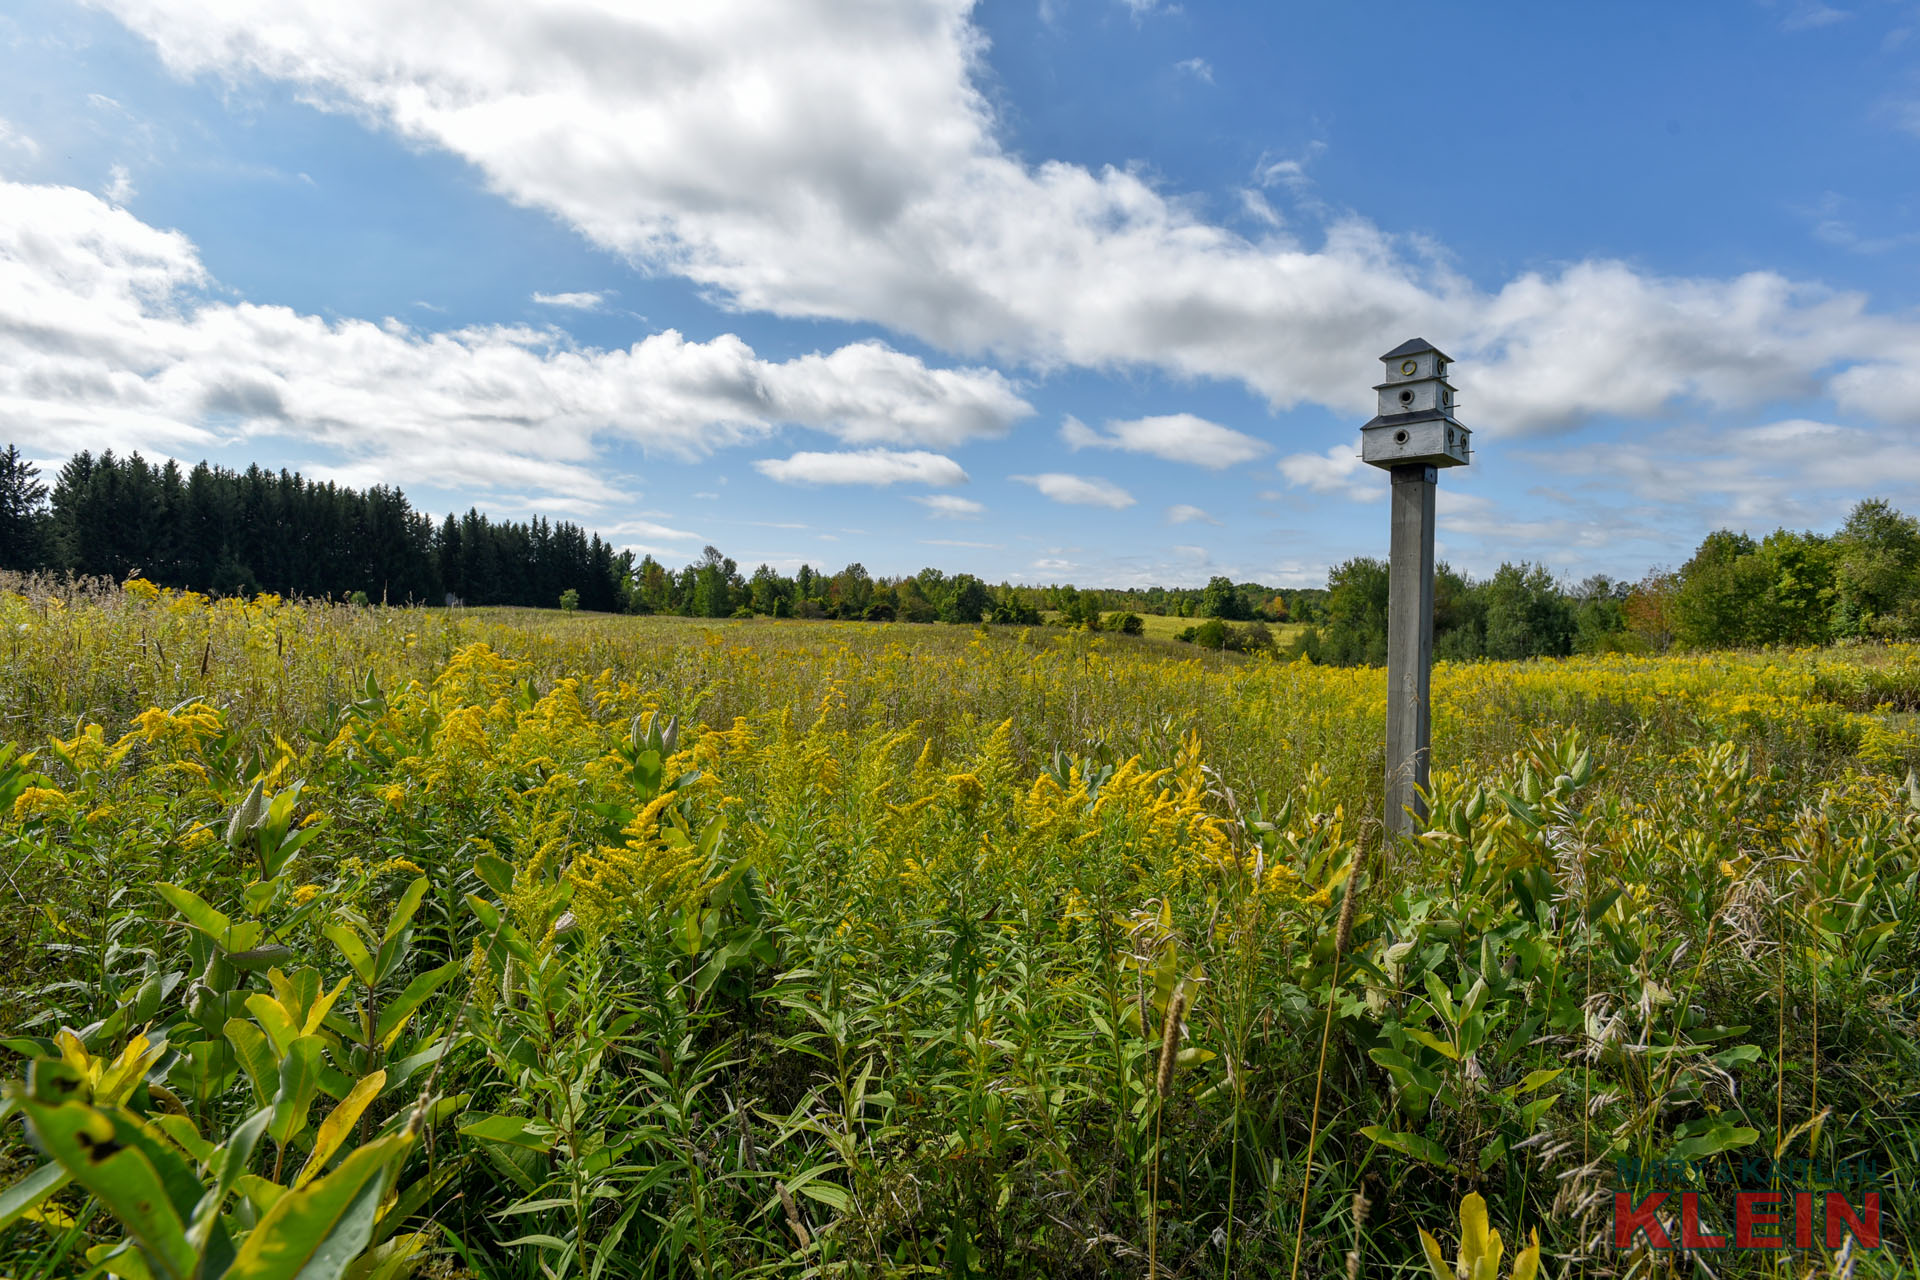 30 Acres in Caledon, Country Property For Sale, Klein